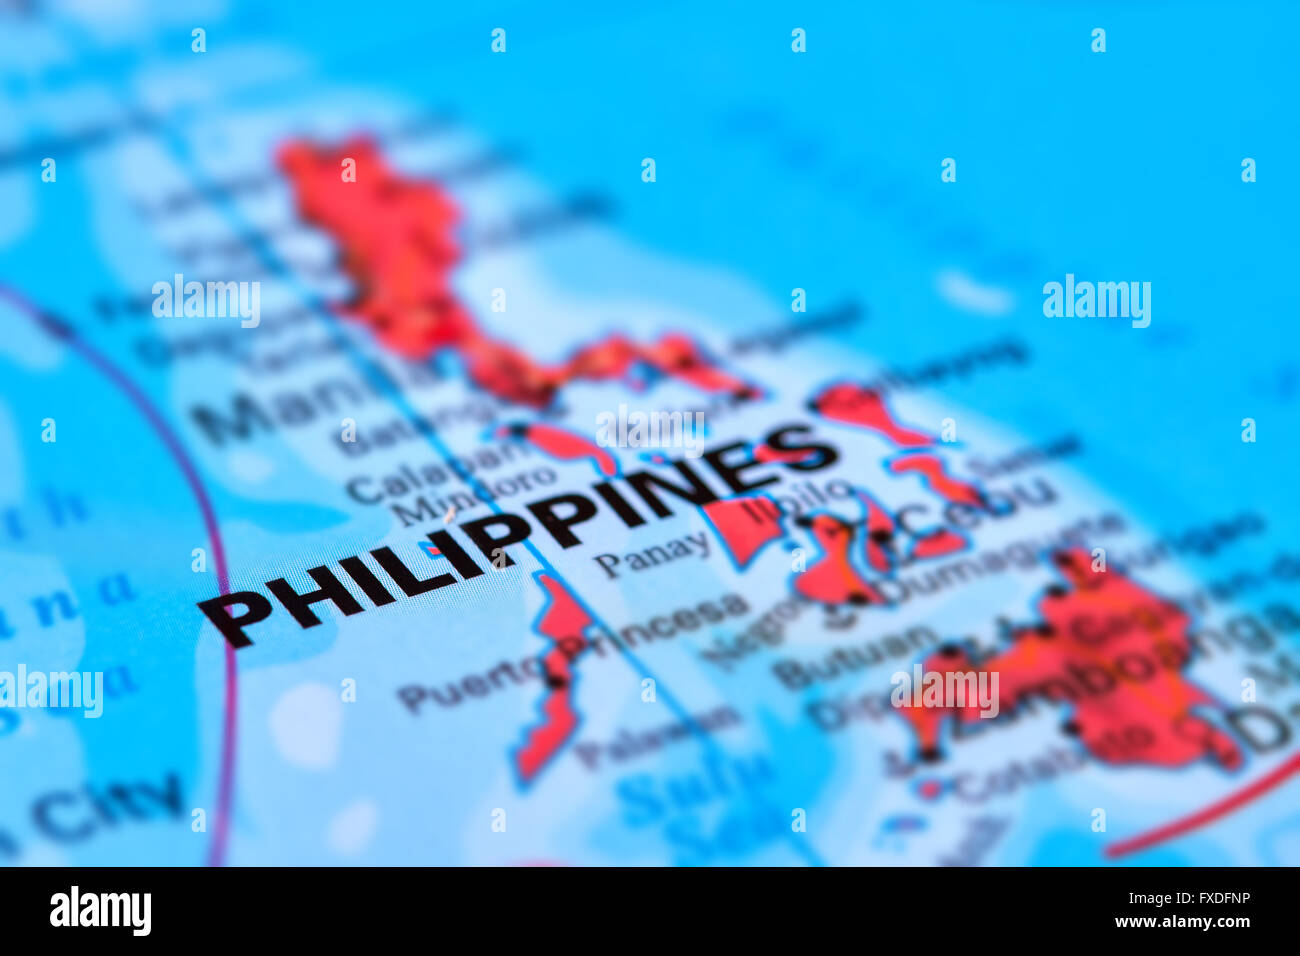 Philippines Islands World Map.Philippines Islands In Oceania On The World Map Stock Photo